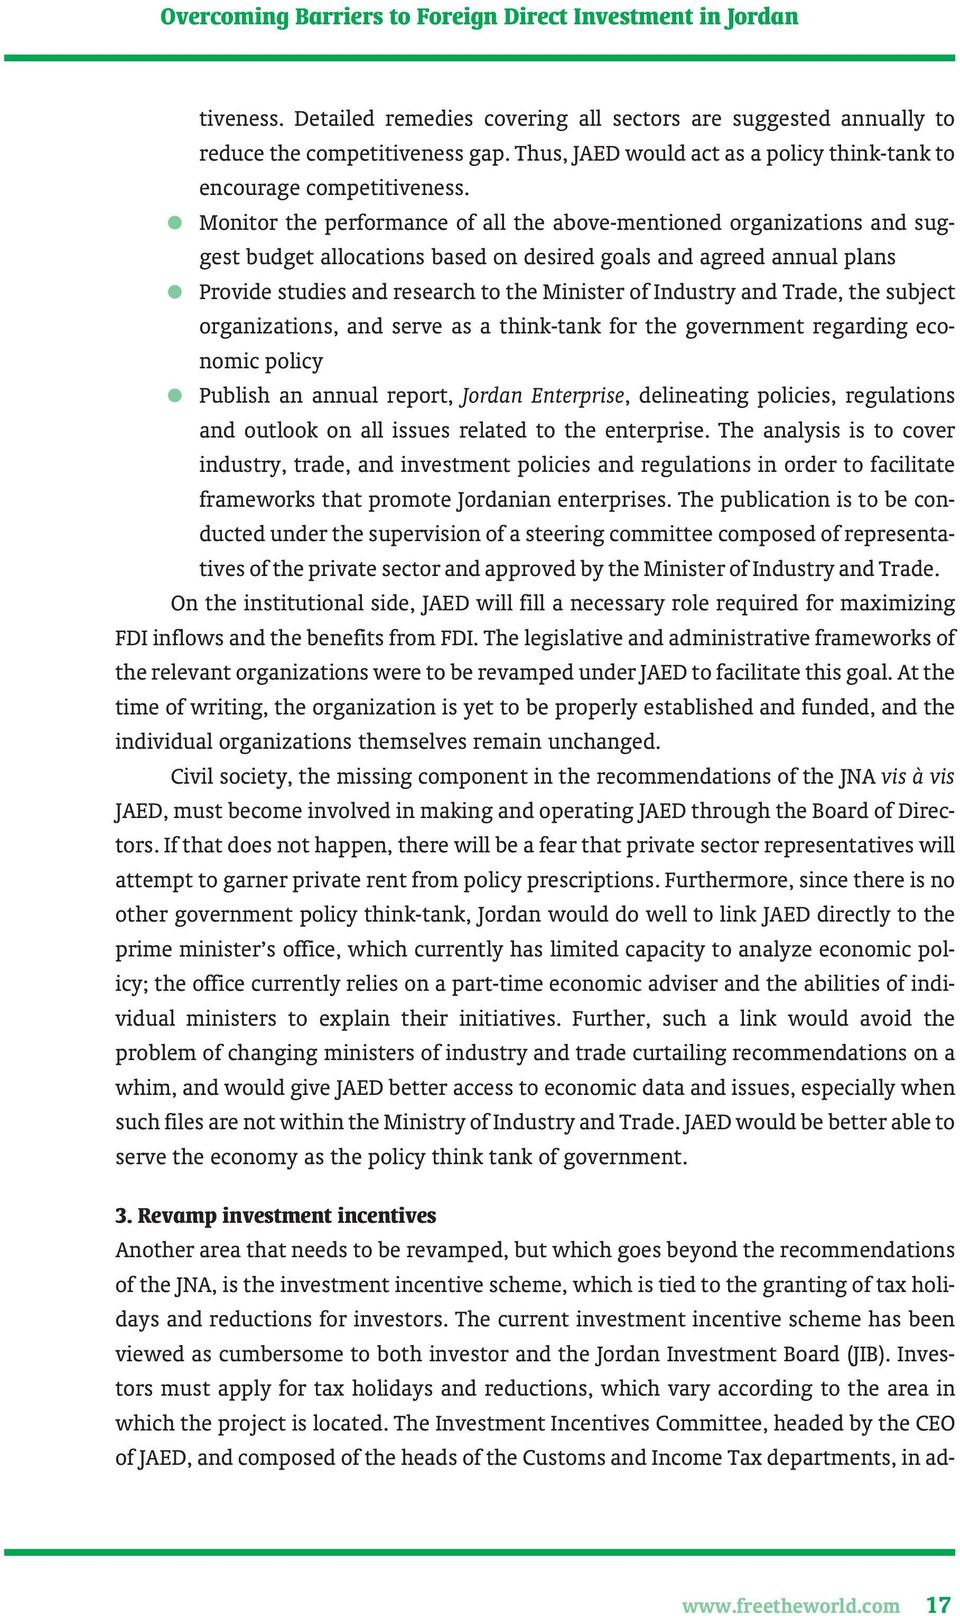 and Trade, the subject organizations, and serve as a think-tank for the government regarding economic policy Publish an annual report, Jordan Enterprise, delineating policies, regulations and outlook